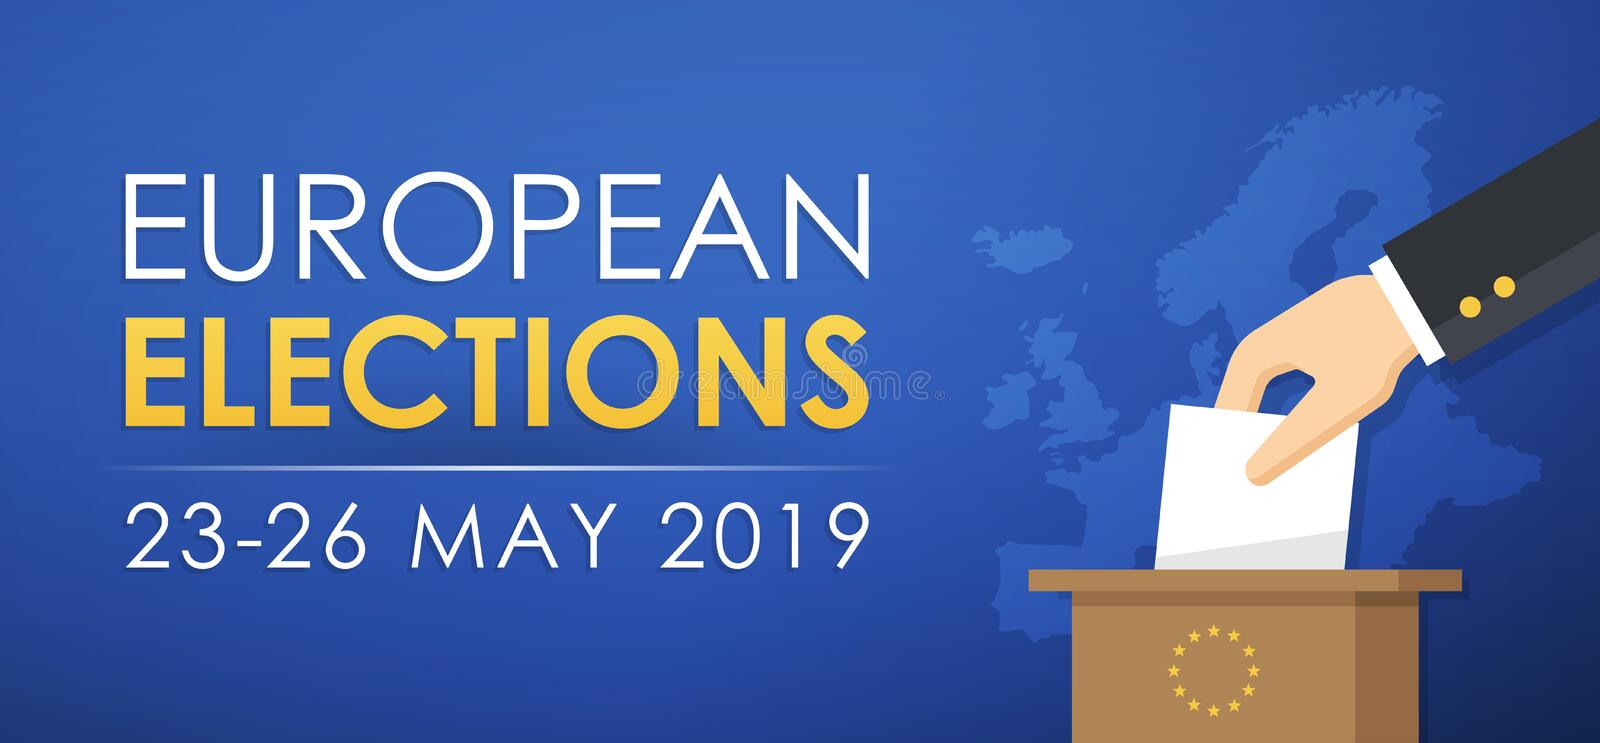 European Elections 2019. European Elections banner, 23-26 May 2019 stock illustration